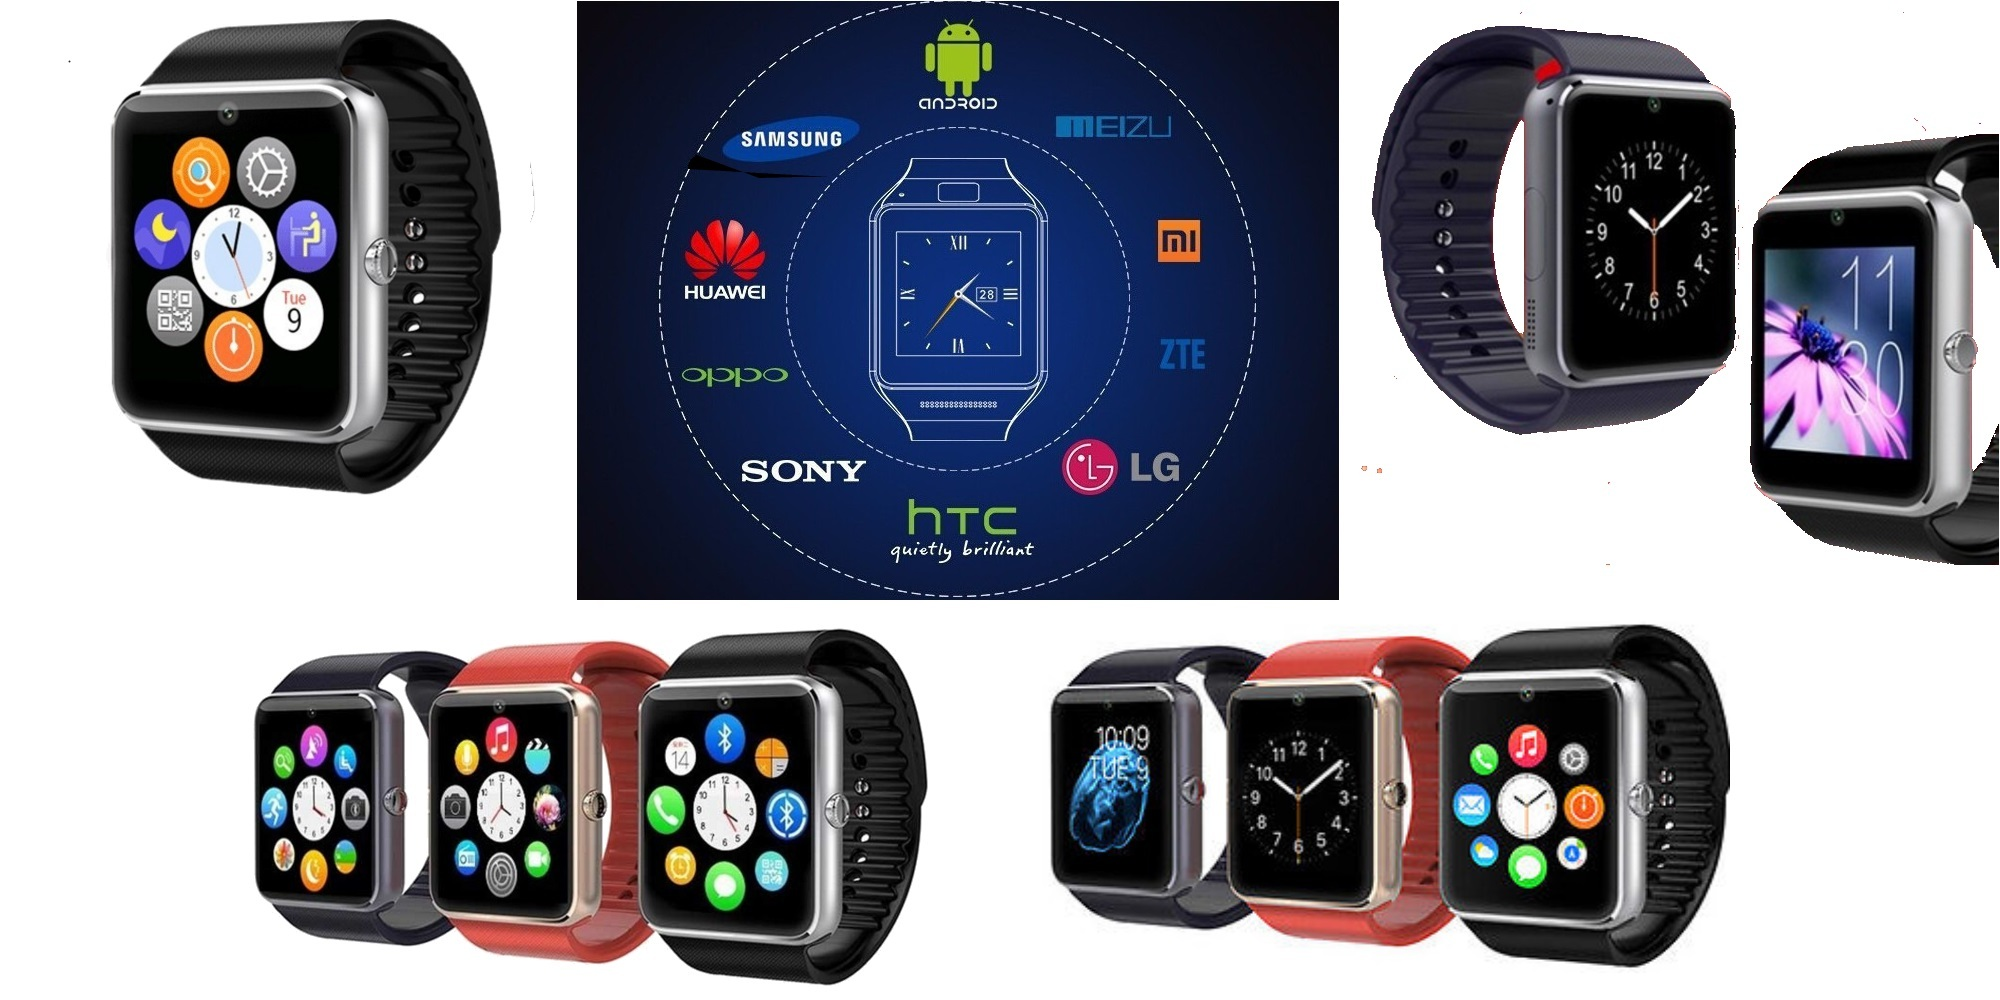 smartwatch gt08. Black Bedroom Furniture Sets. Home Design Ideas